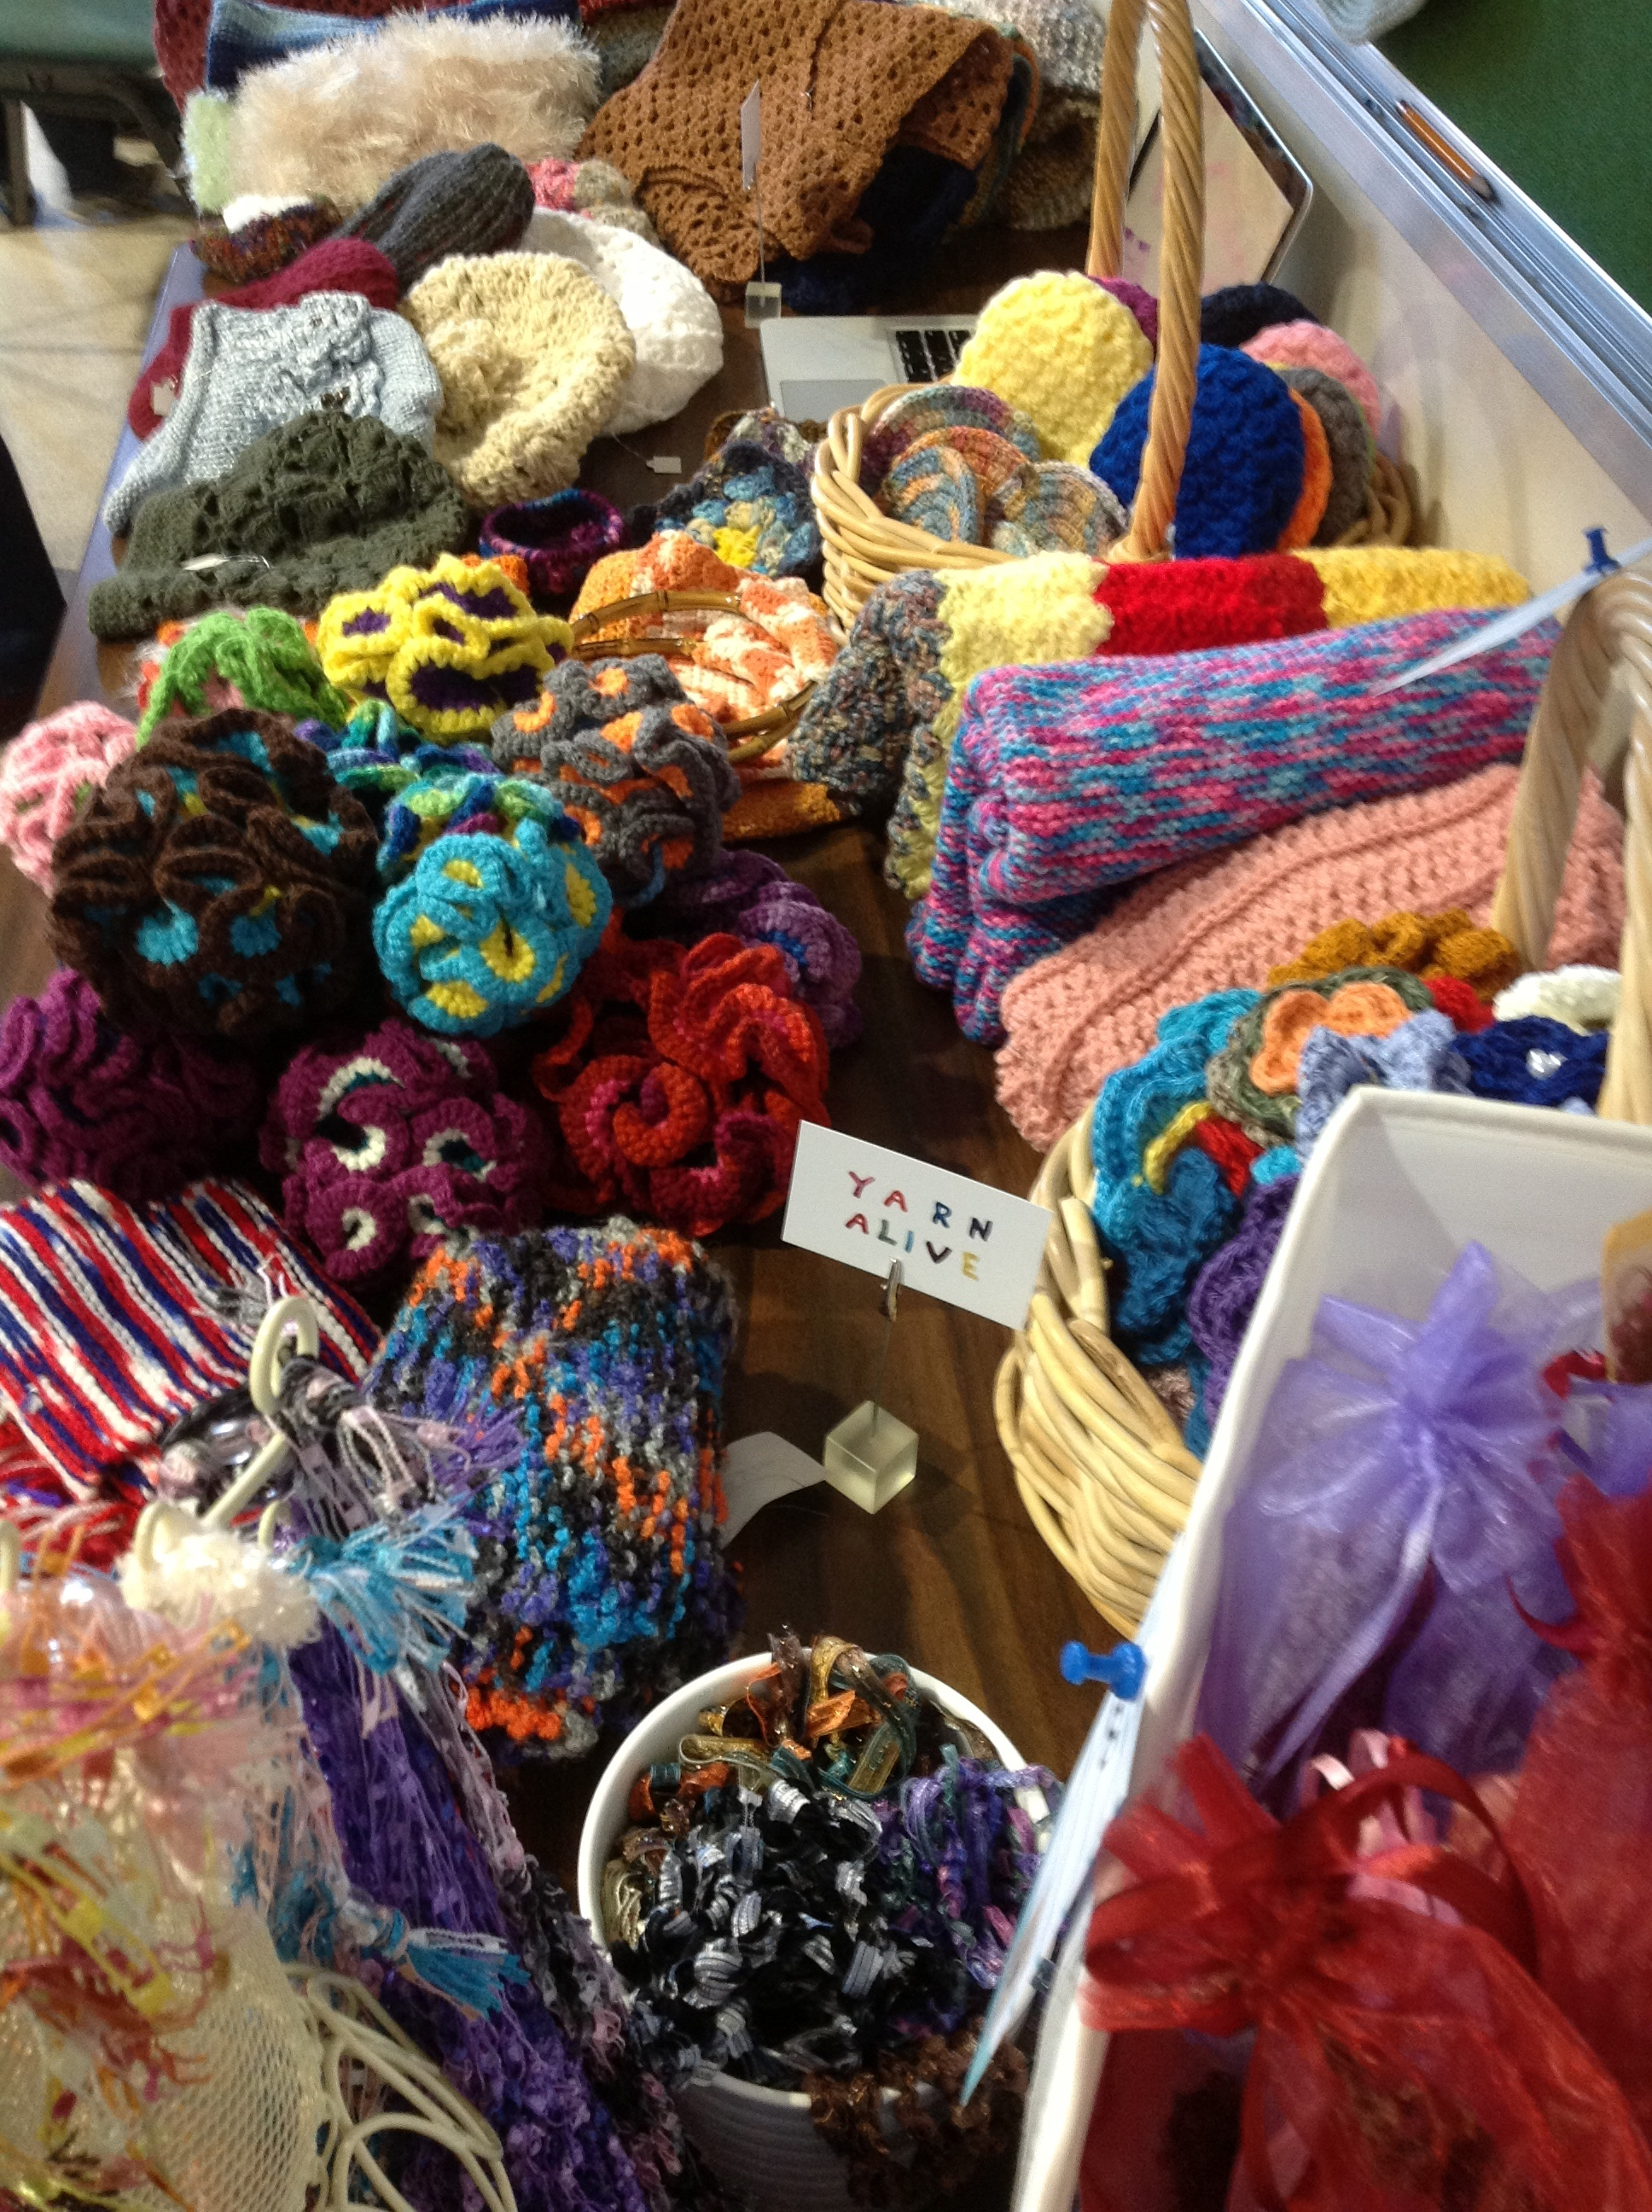 From necklaces, to flowers, to blankets, to shawls and more!